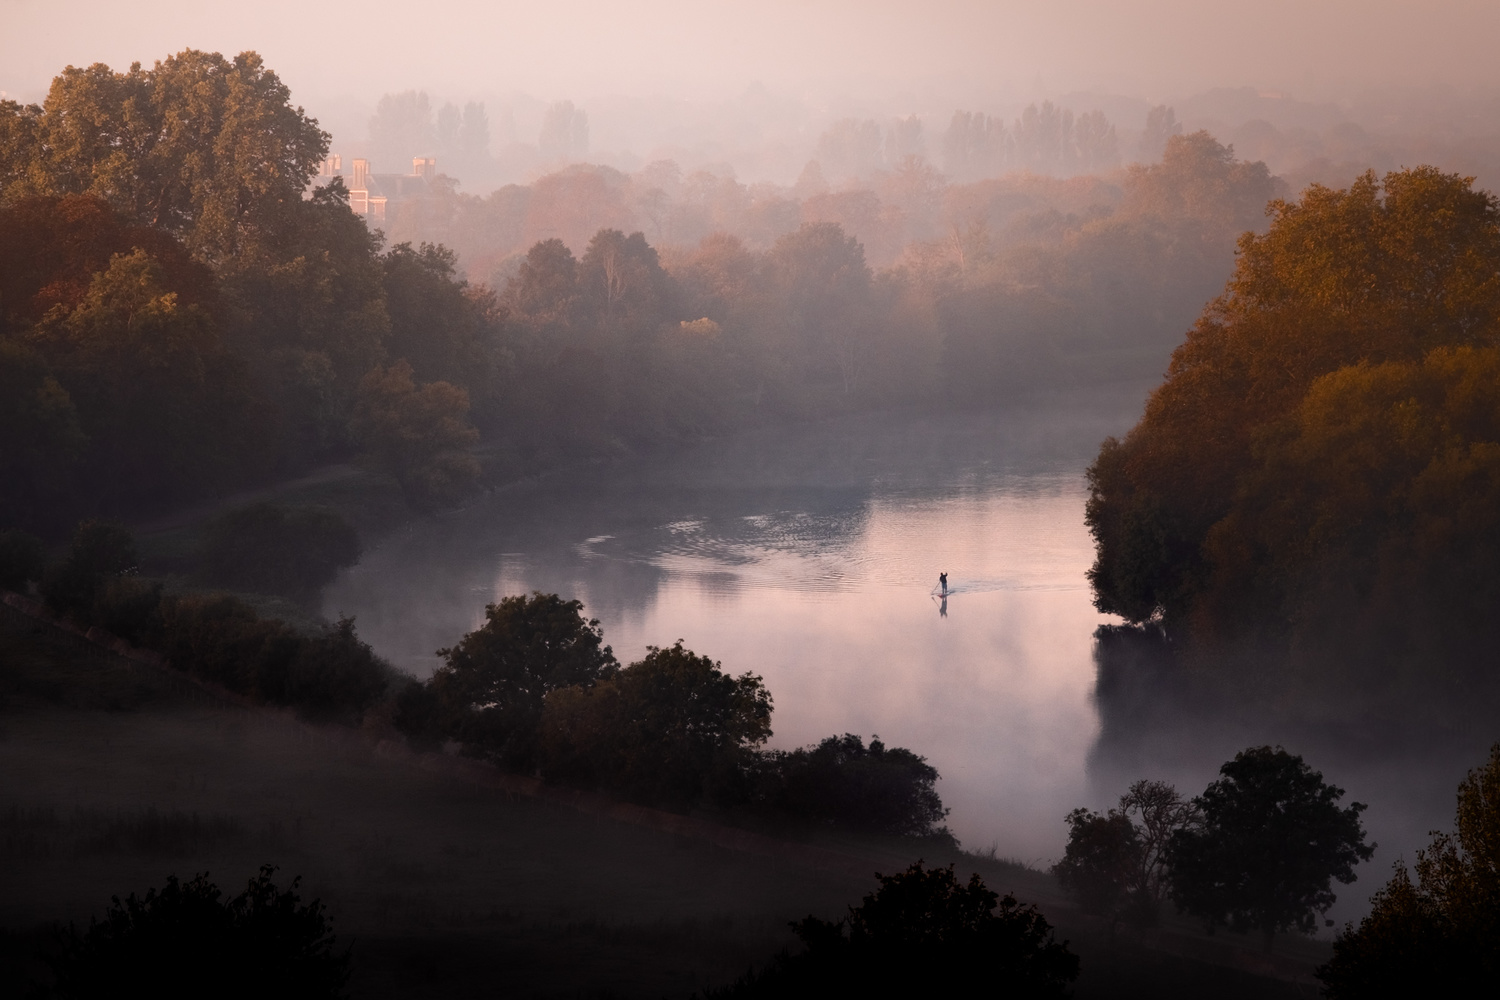 Paddleboarder on the Thames by Julian Macedo